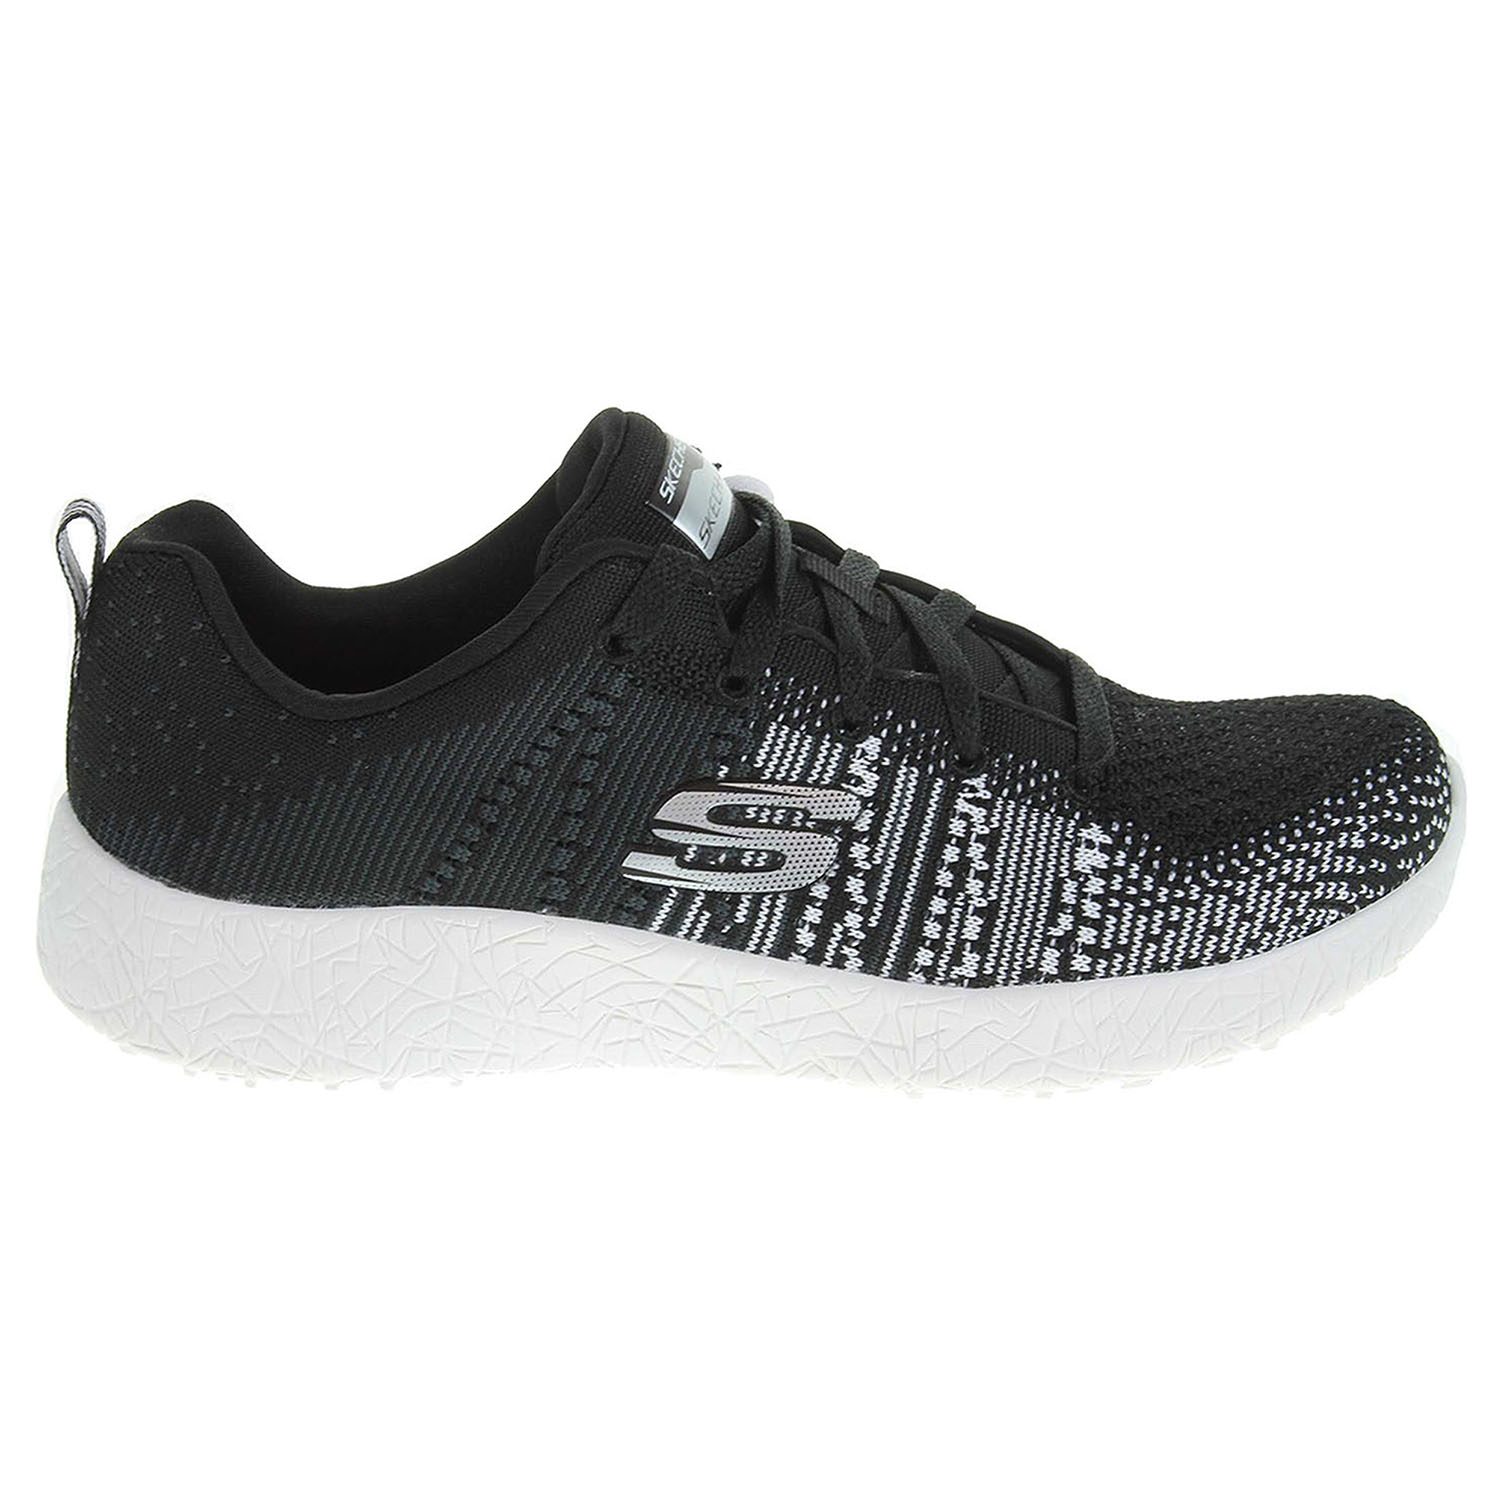 Ecco Skechers Burst Ellipse black-white 23900176